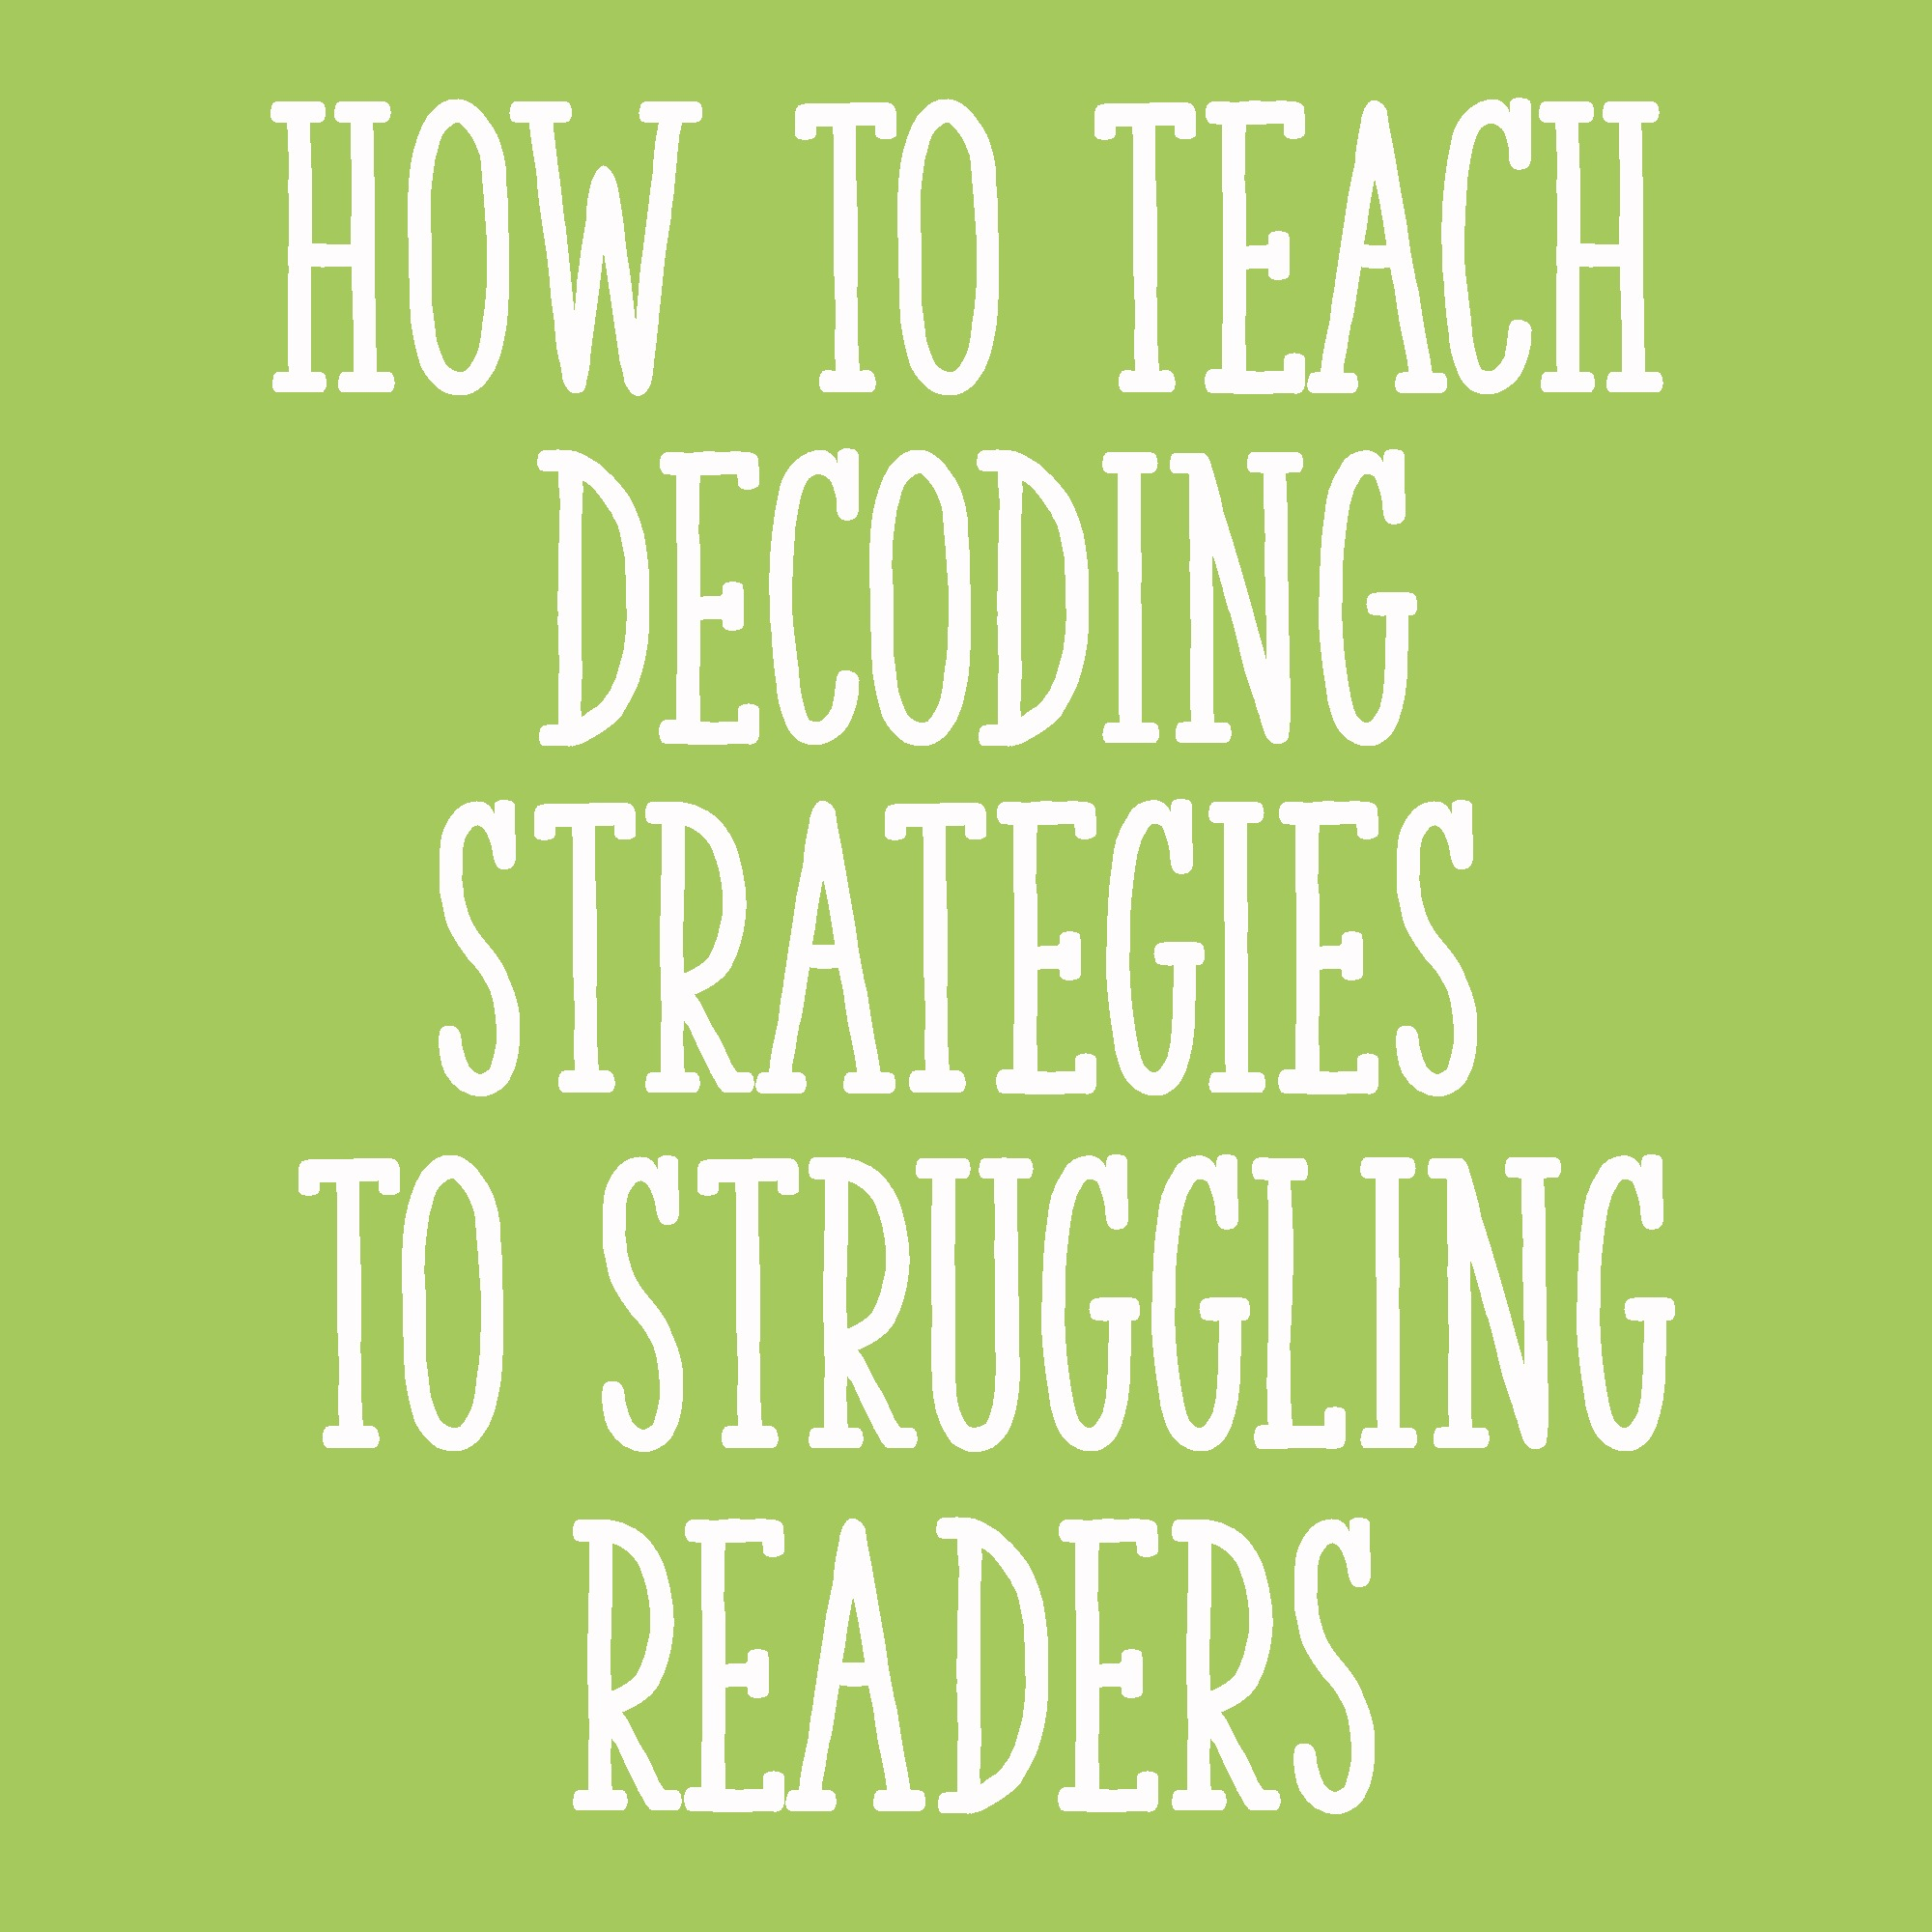 How To Teach Decoding Strategies To Struggling Readers